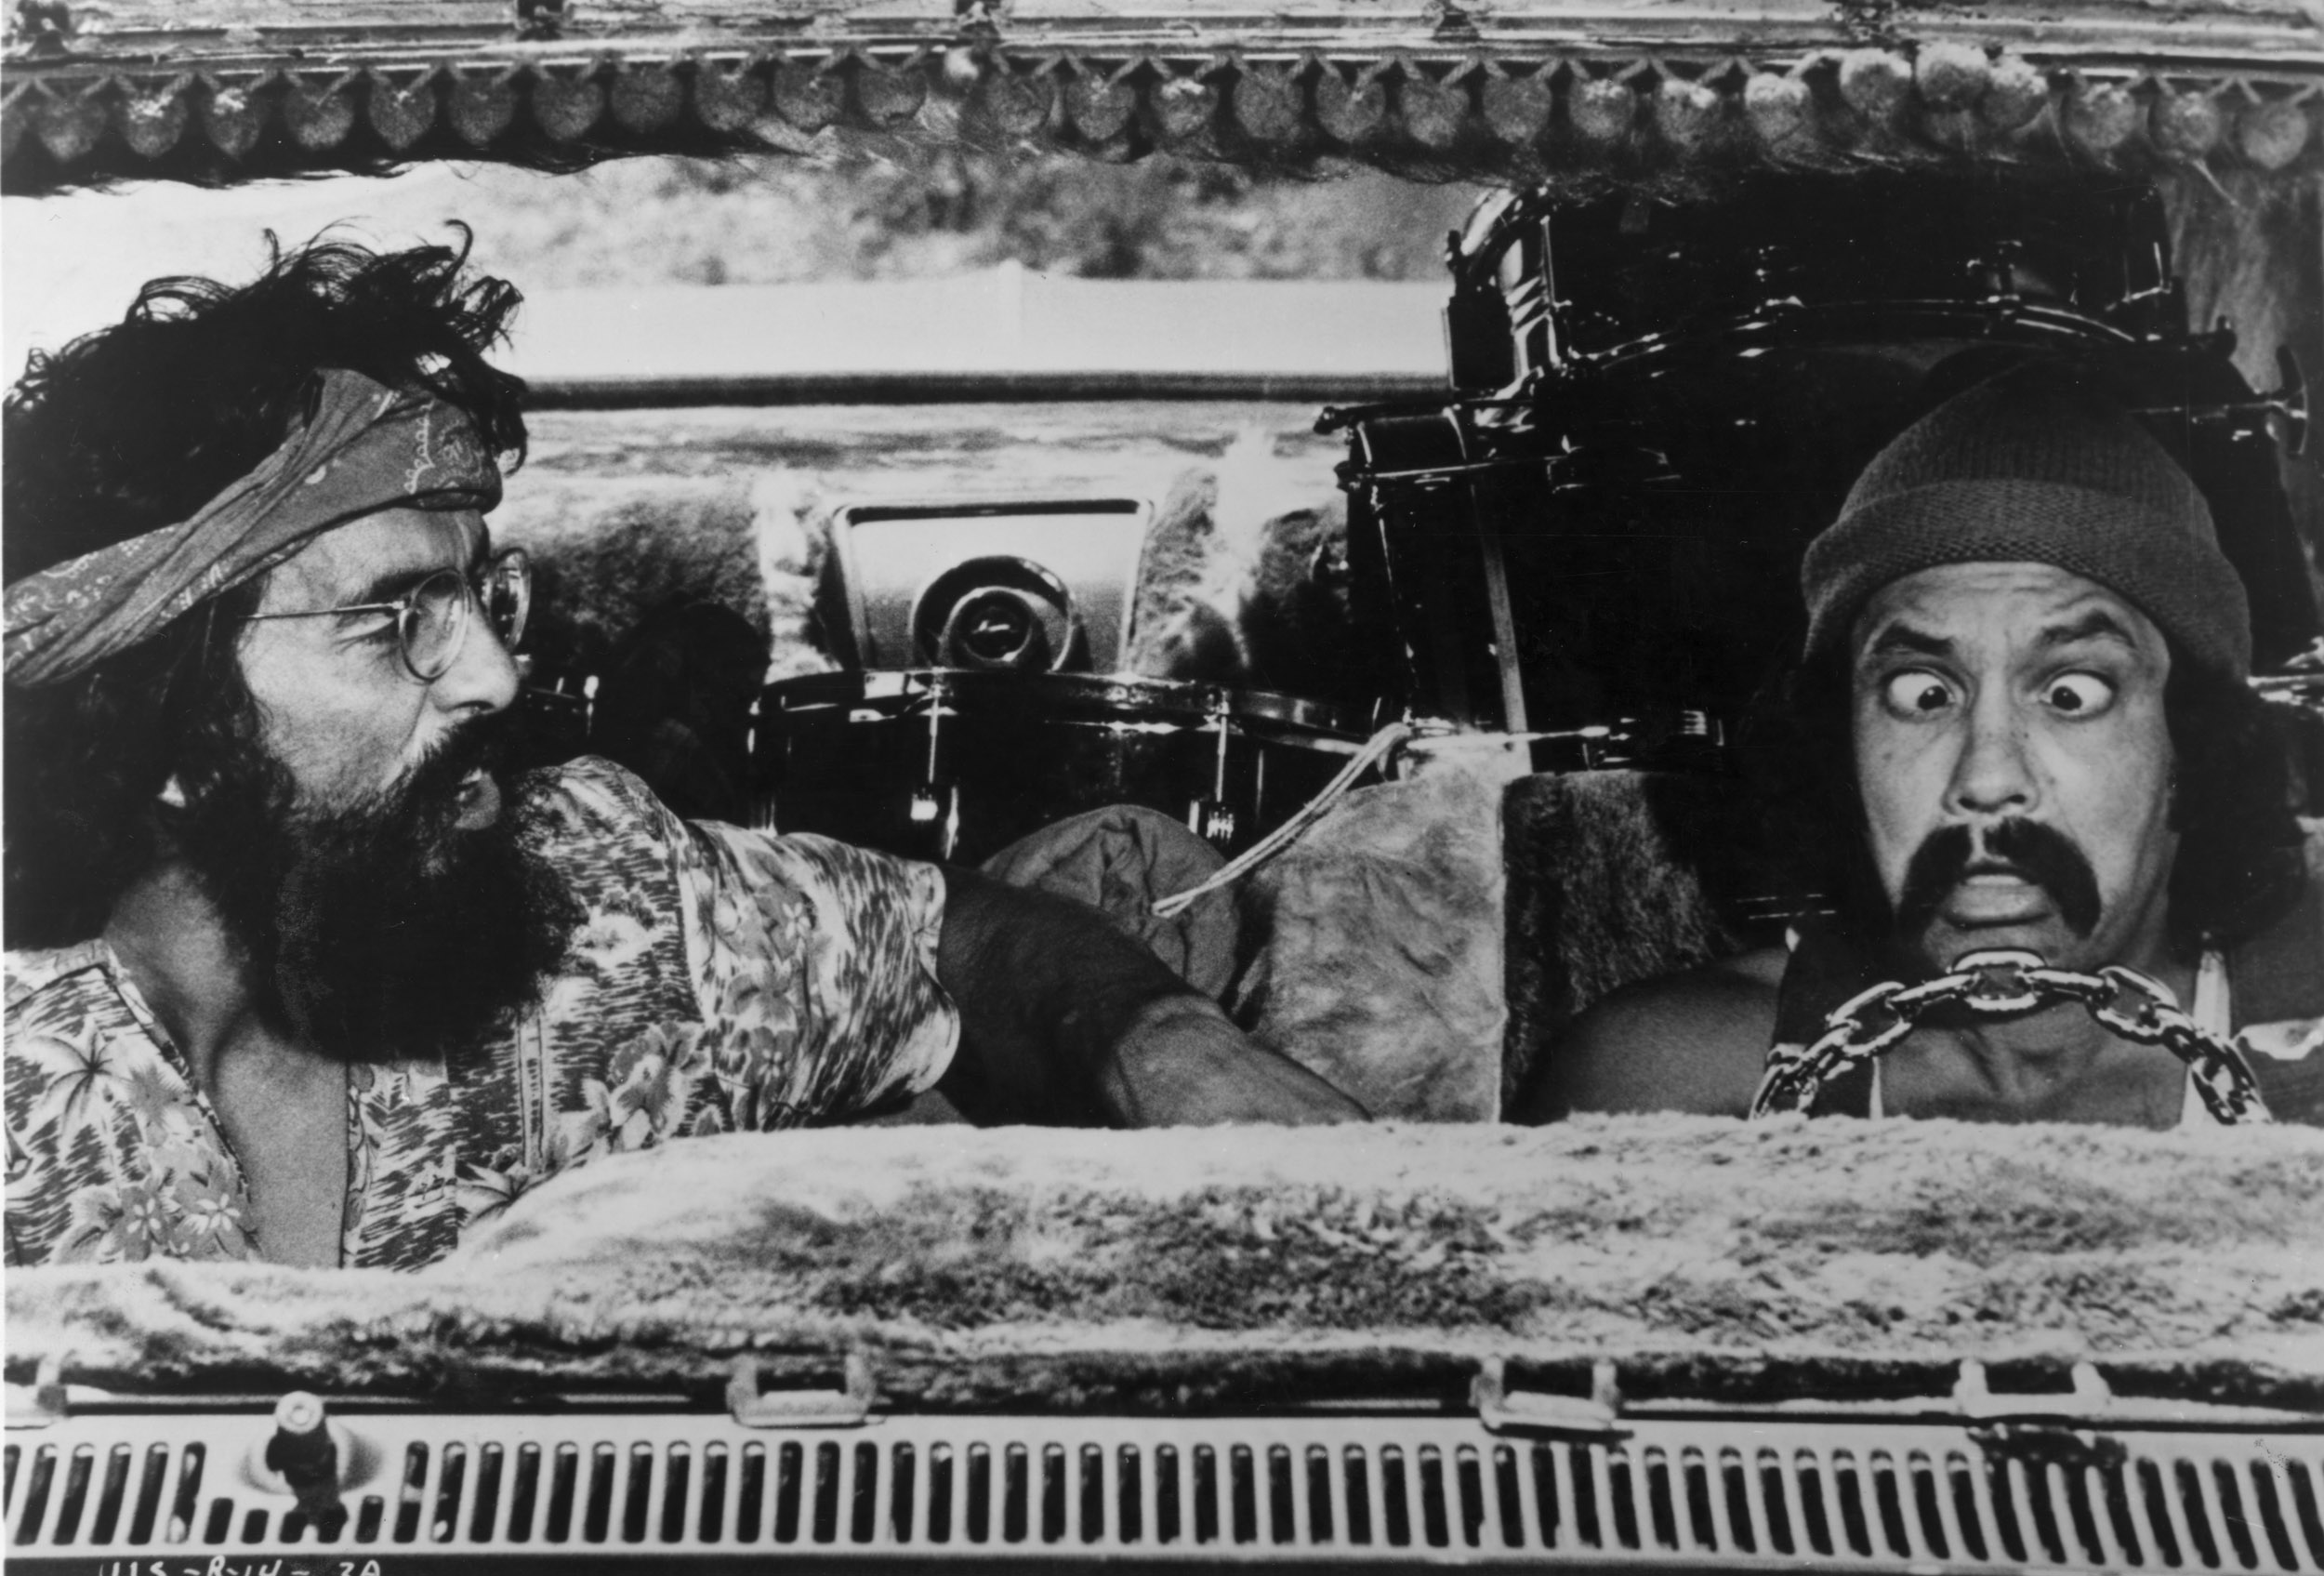 Komédia Cheech and Chong